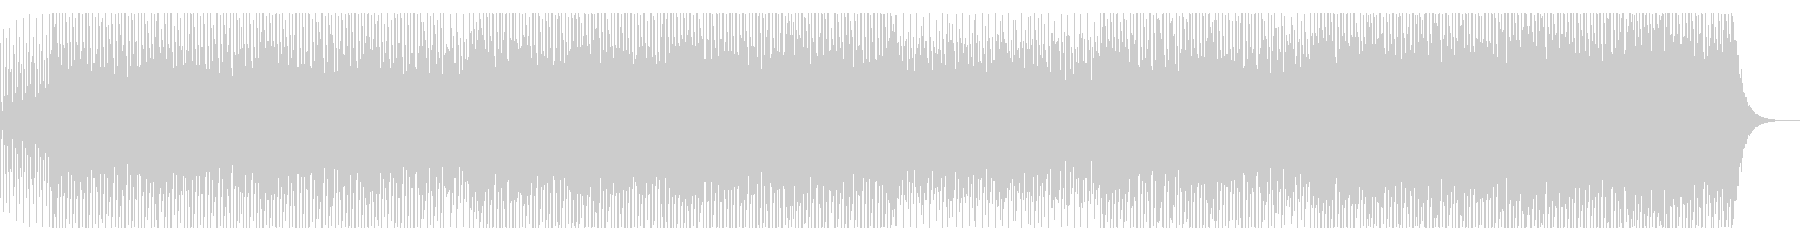 The Strategy's unreproduced waveform